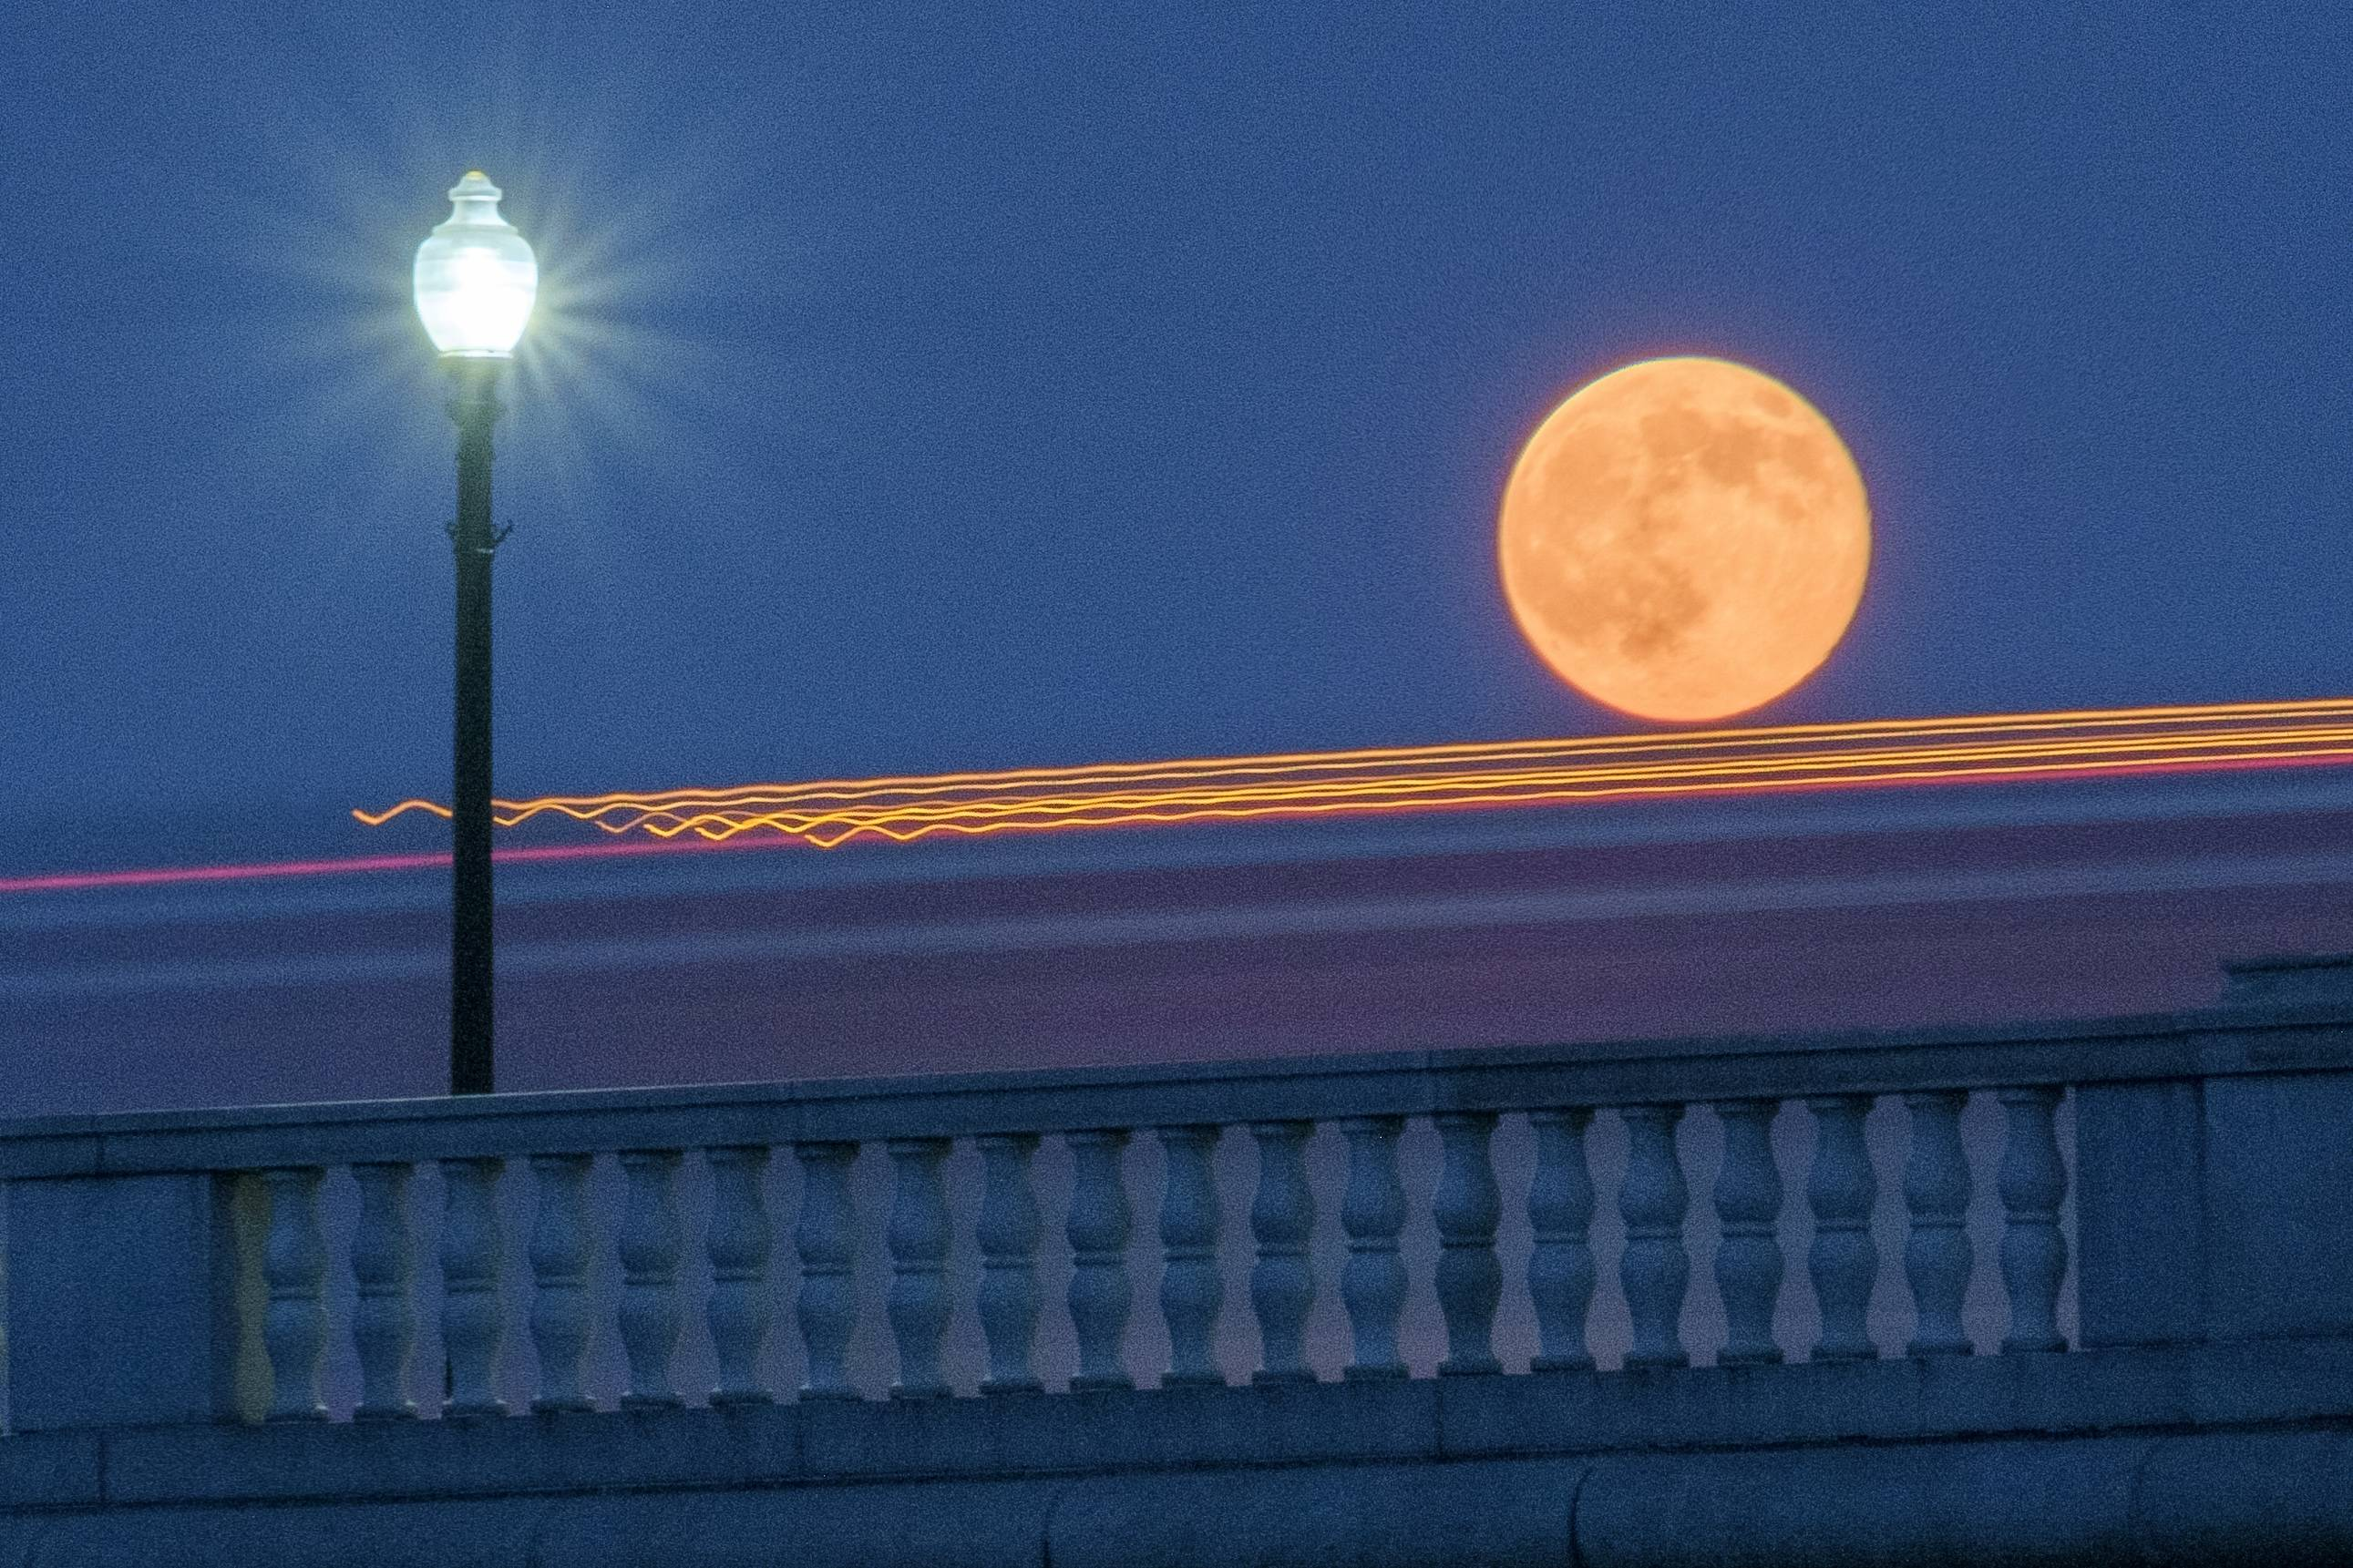 Traffic streaks by the supermoon as it rises behind the Memorial Bridge in Washington, Saturday, July 12, 2014. The full moon Saturday may seem huge, but it's just an illusion caused by its position in the sky.